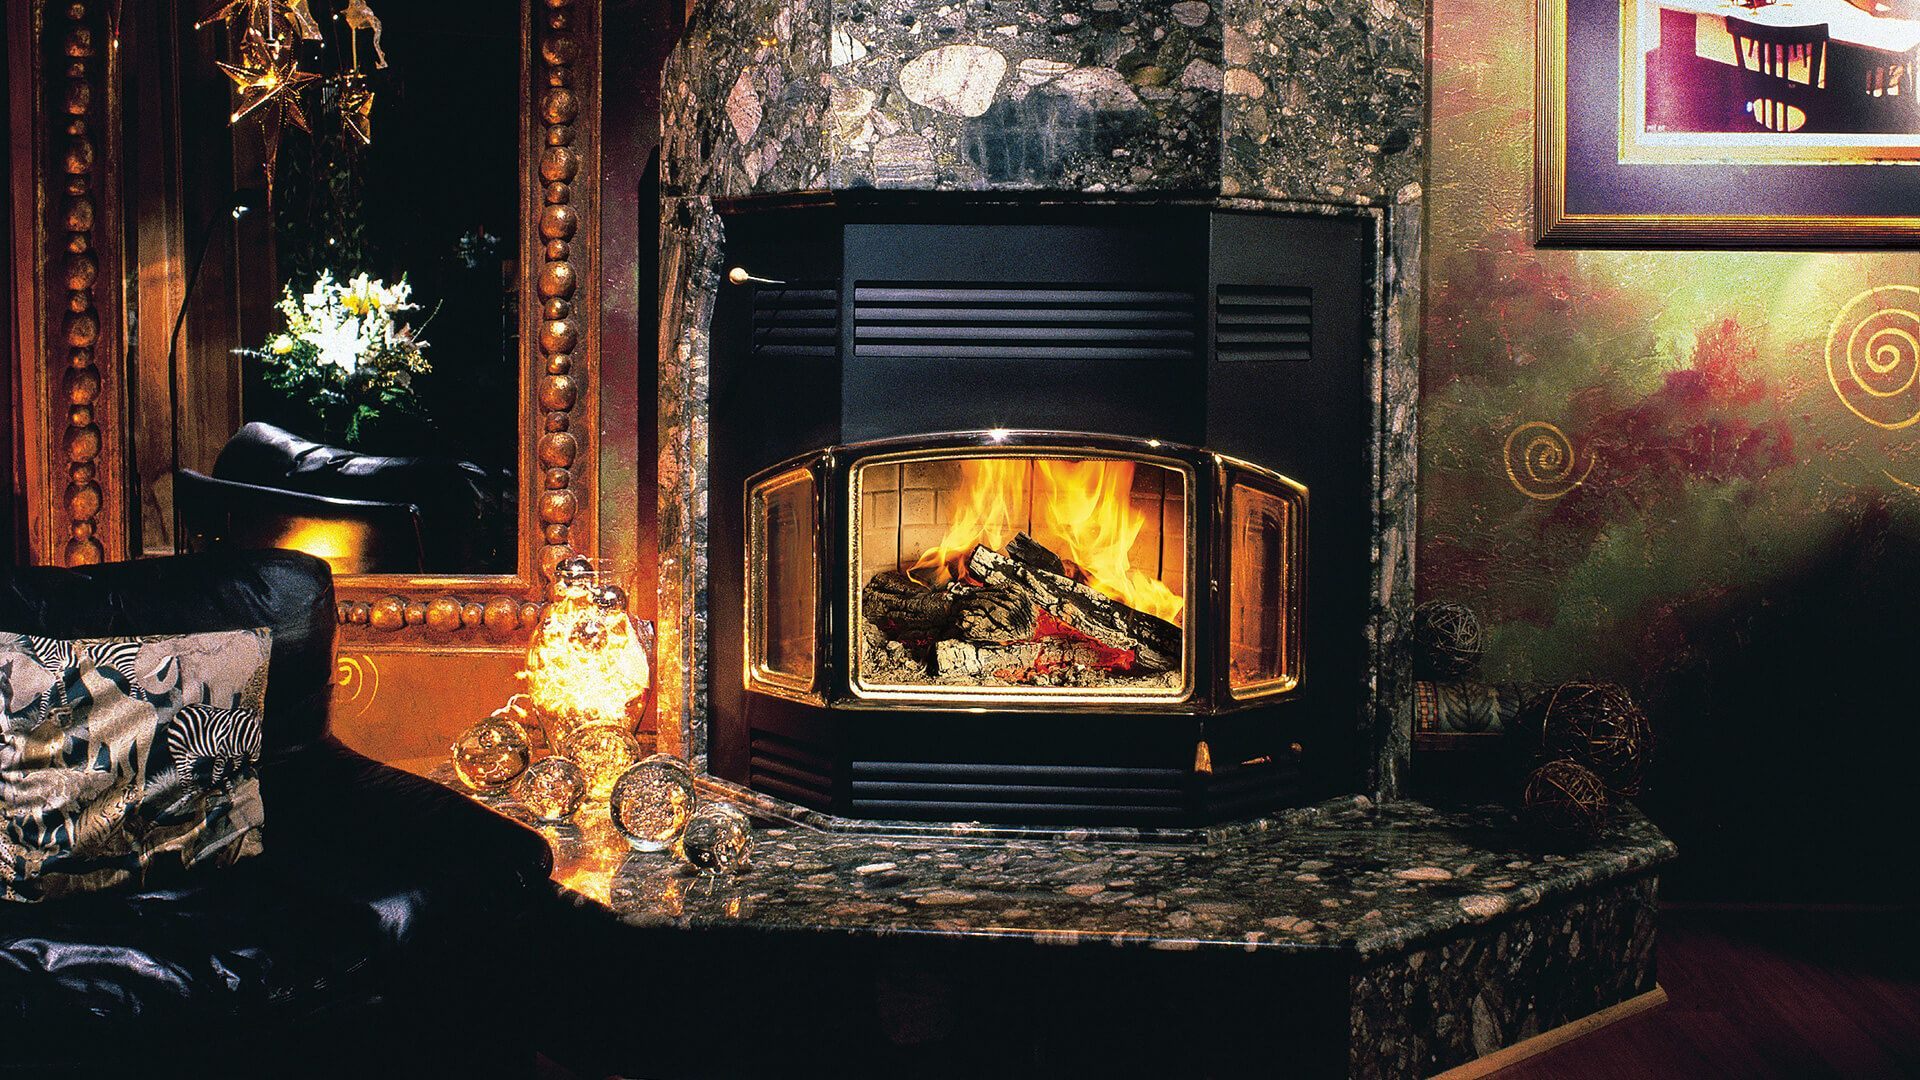 Delta 2 Rsf Fireplaces Fireplace Wood Fireplace Wood Stove